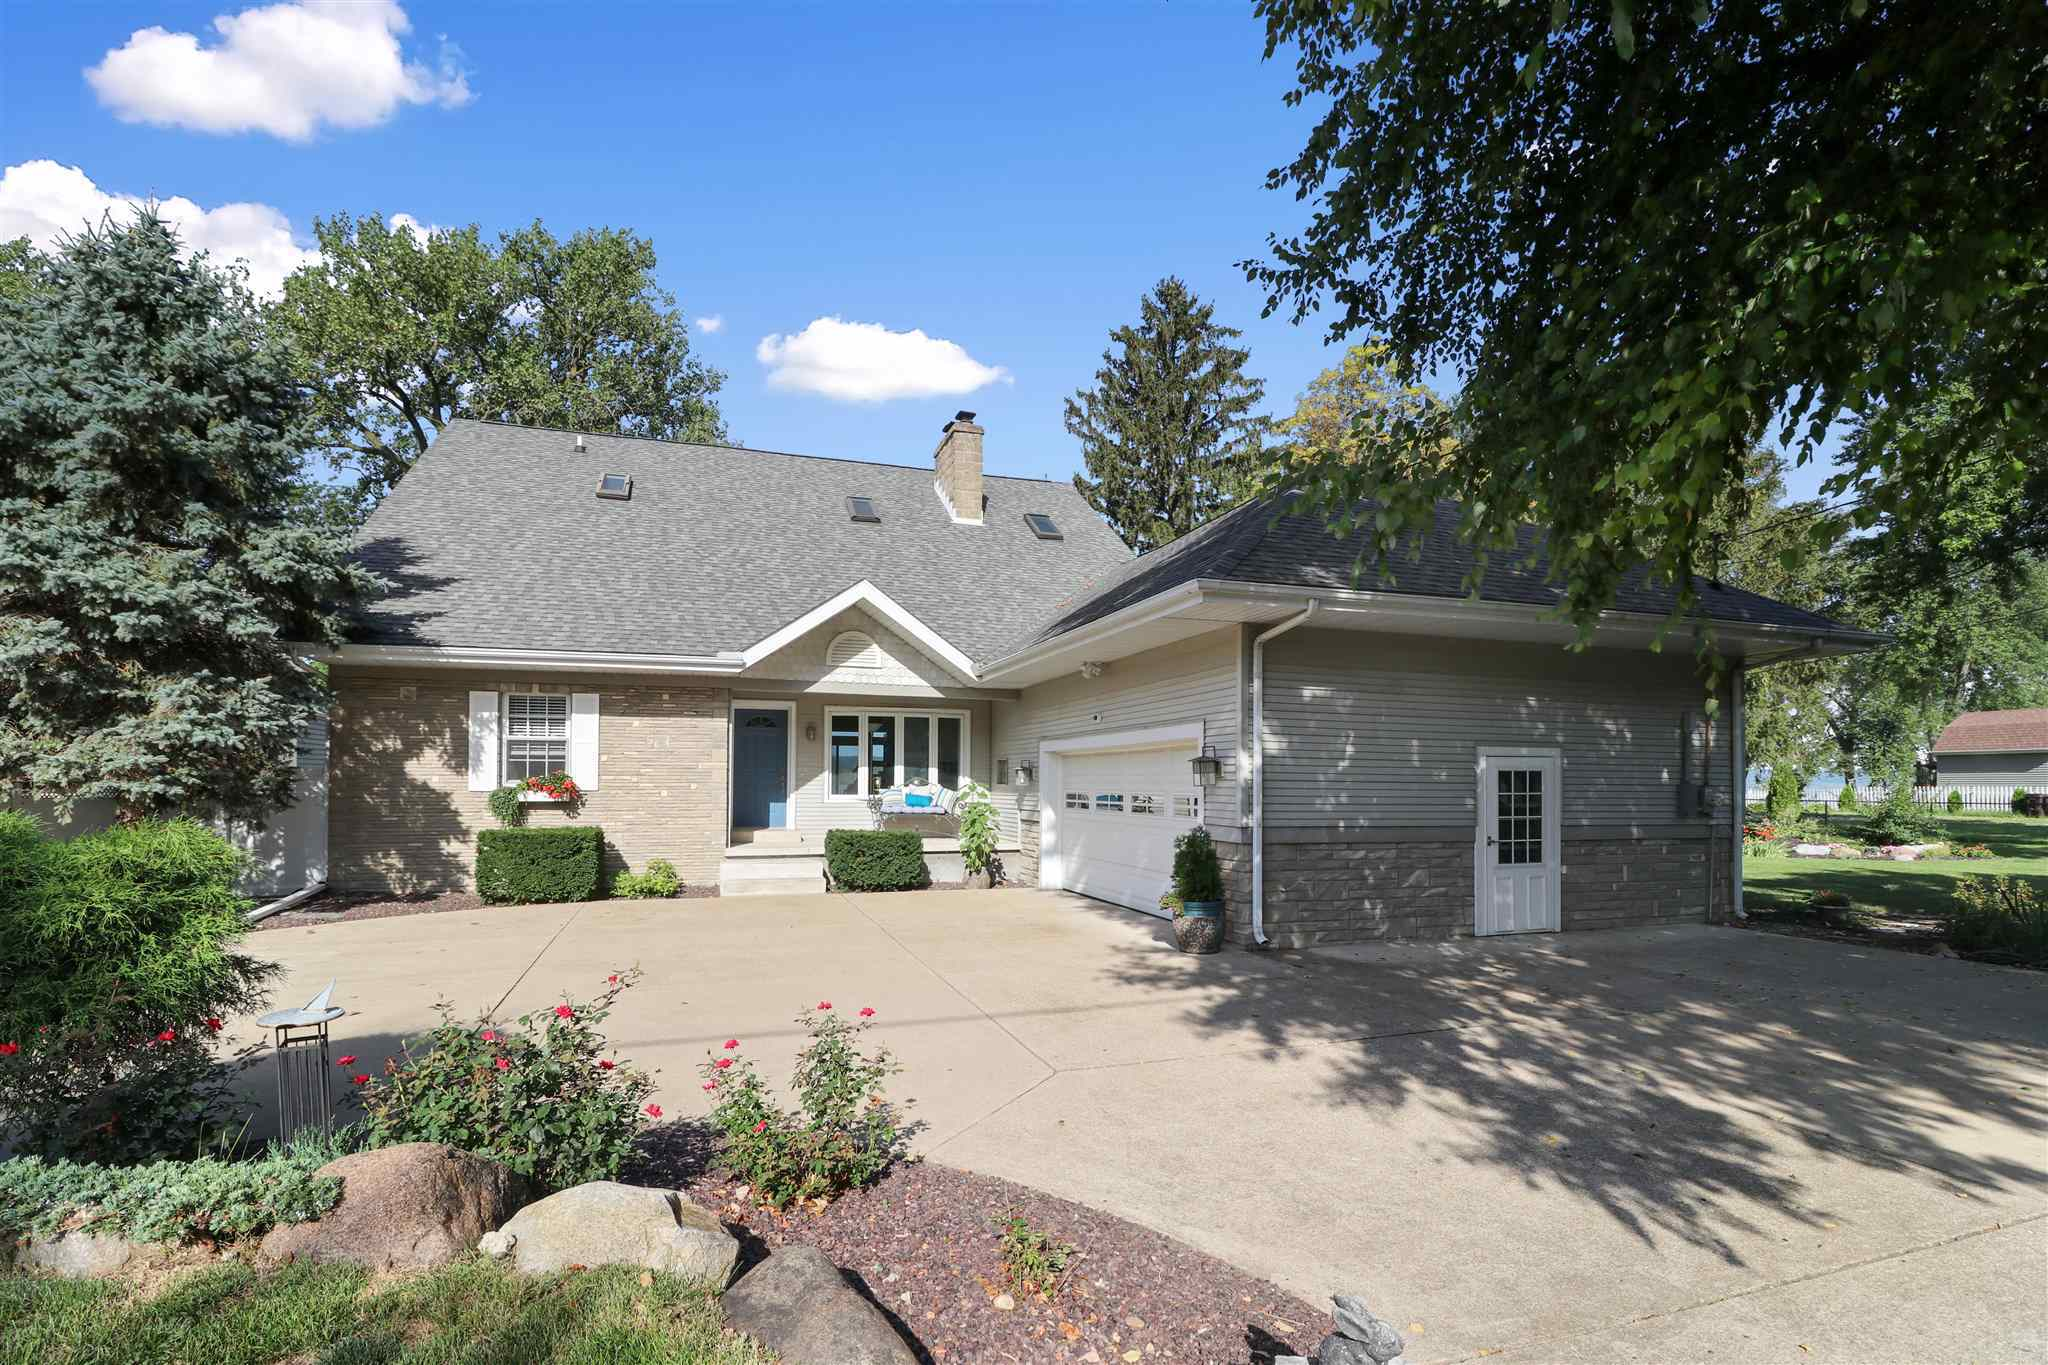 $550,000 - 4Br/4Ba -  for Sale in Spring Beach, East Peoria